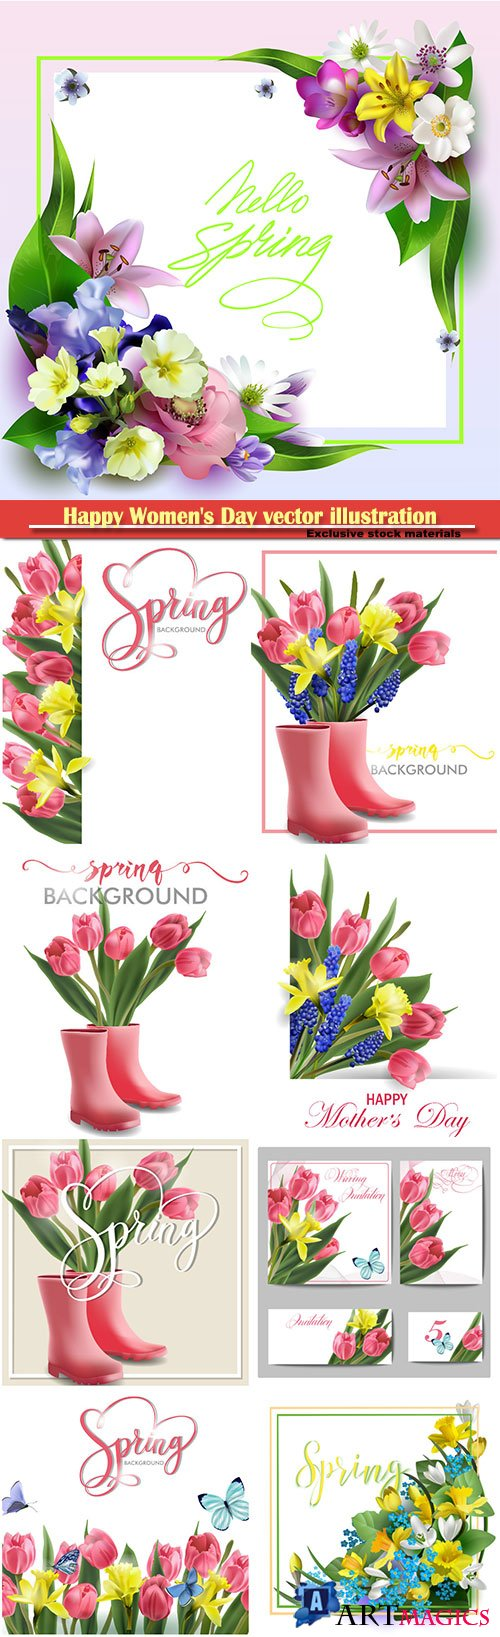 Happy Women's Day vector illustration,8 March, spring flower background # 10